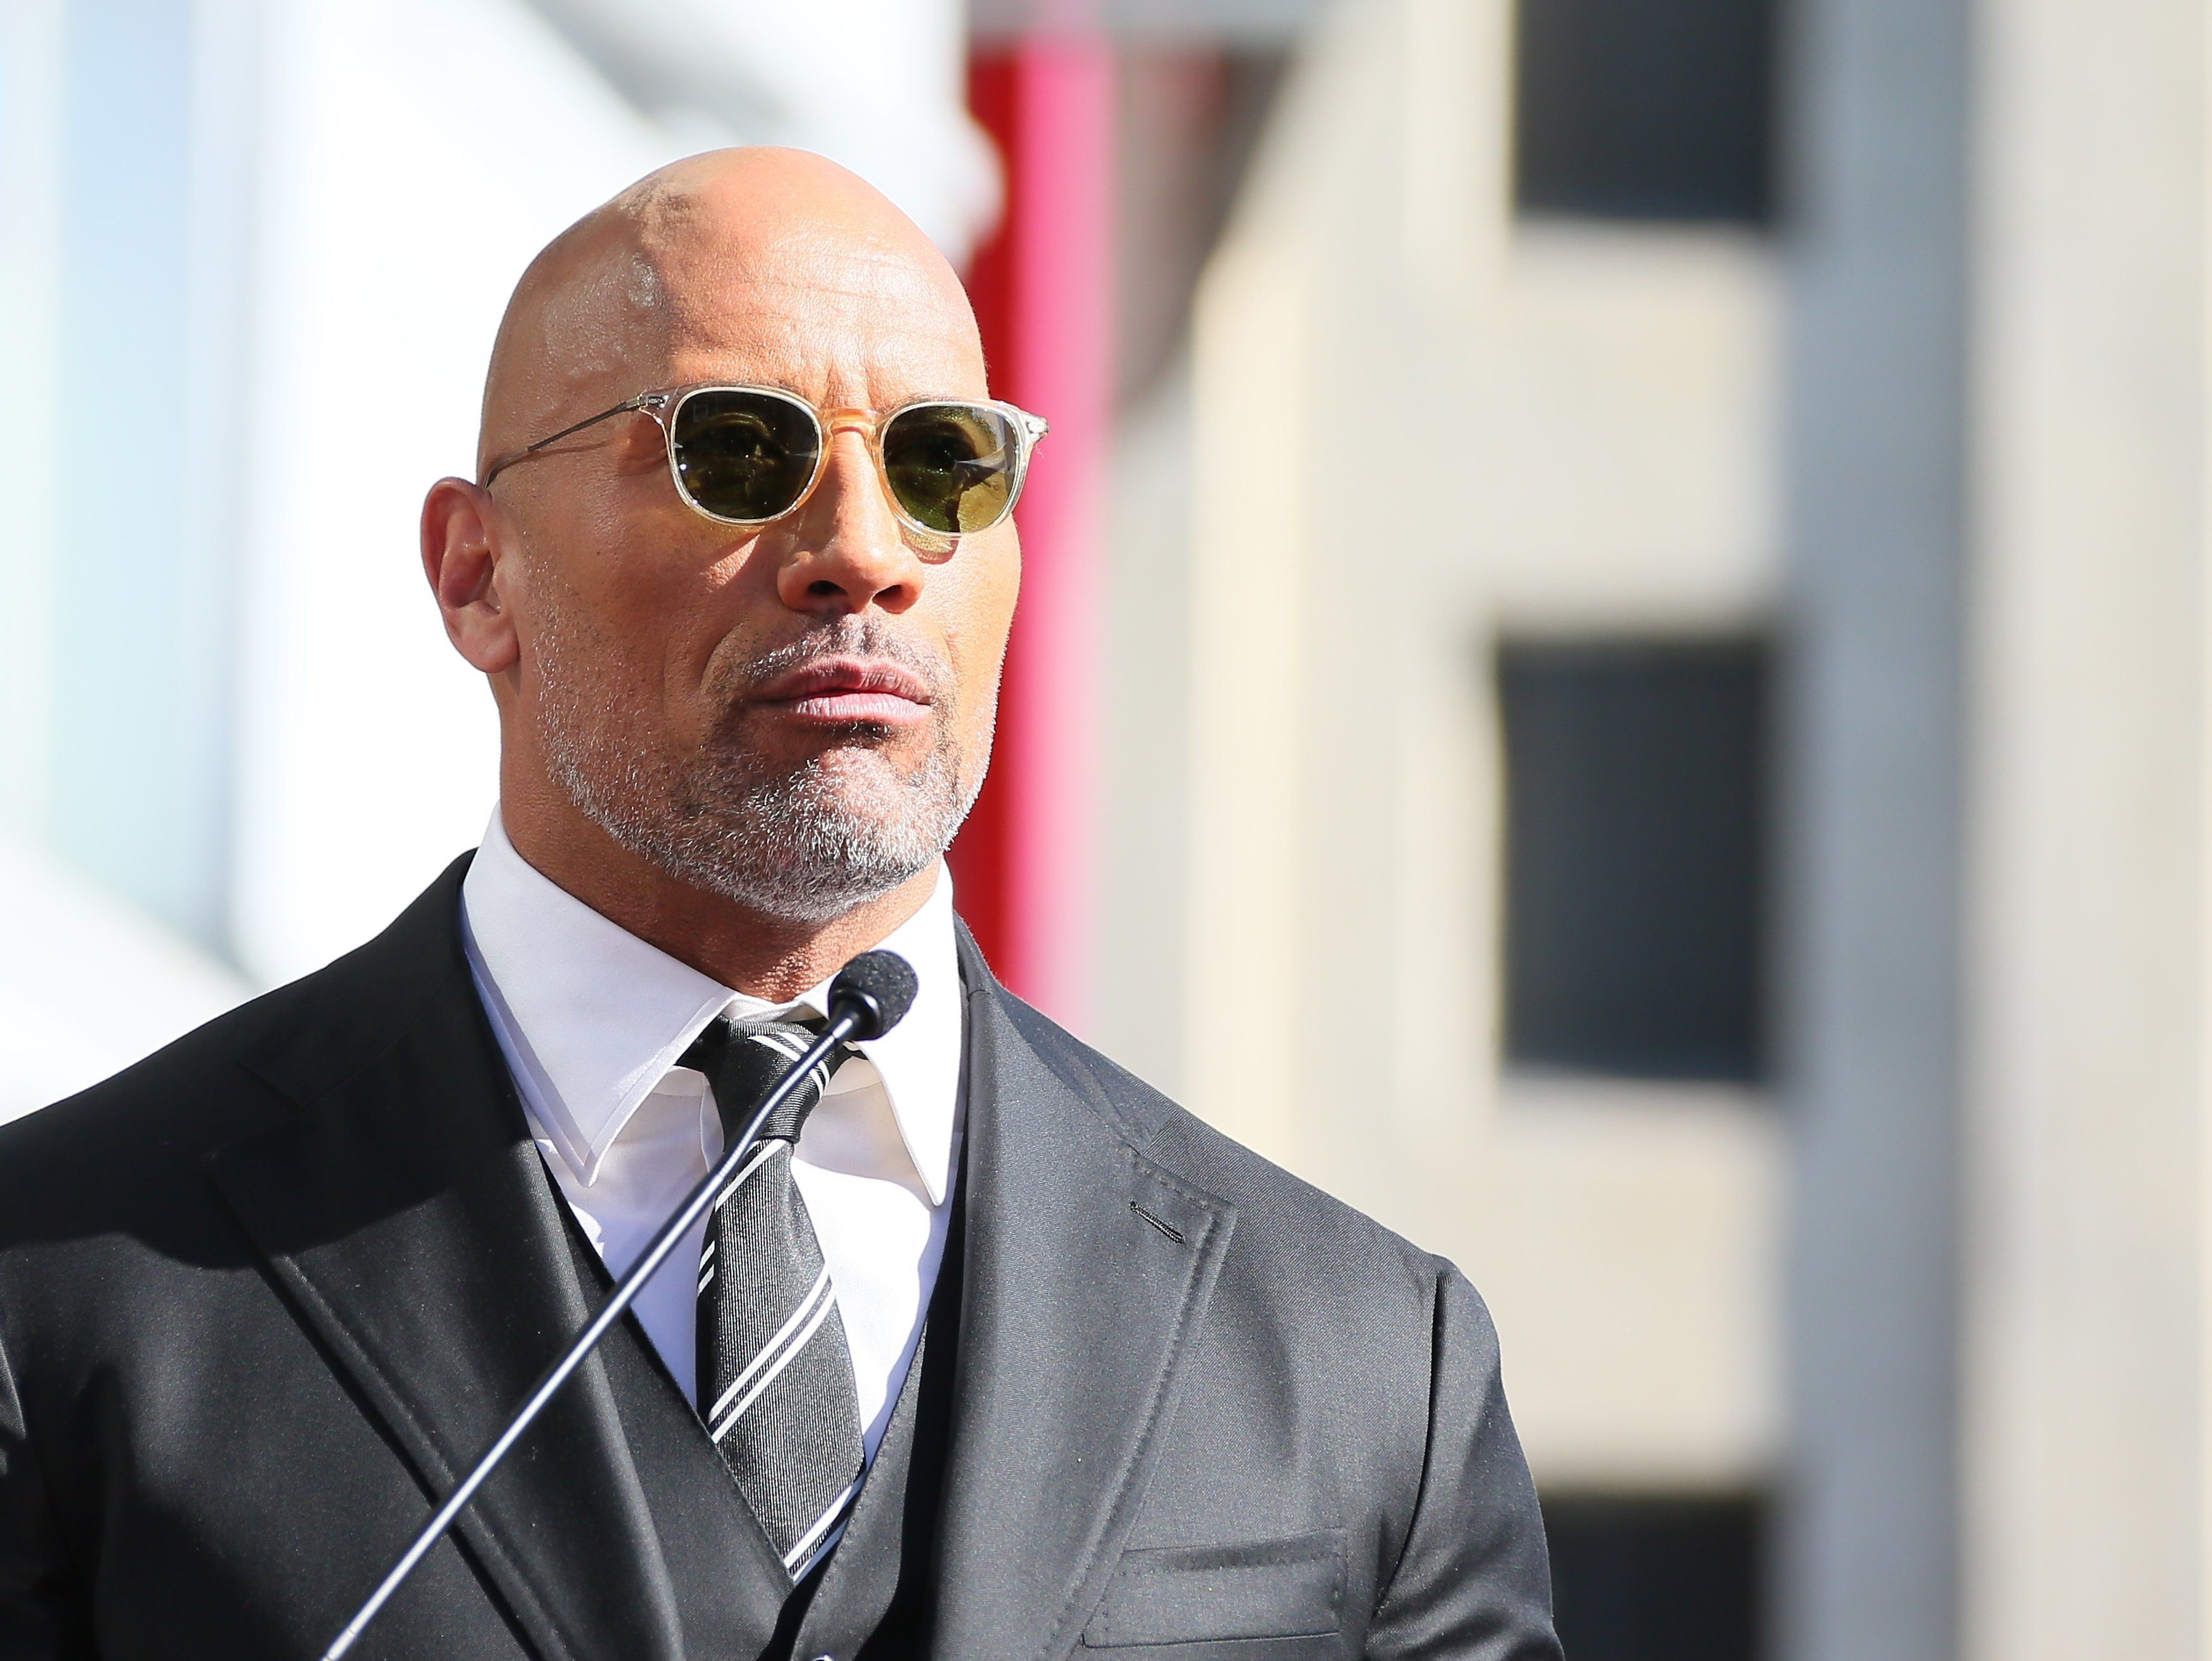 Dwayne Johnson Opens Up About His Mother's Suicide Attempt